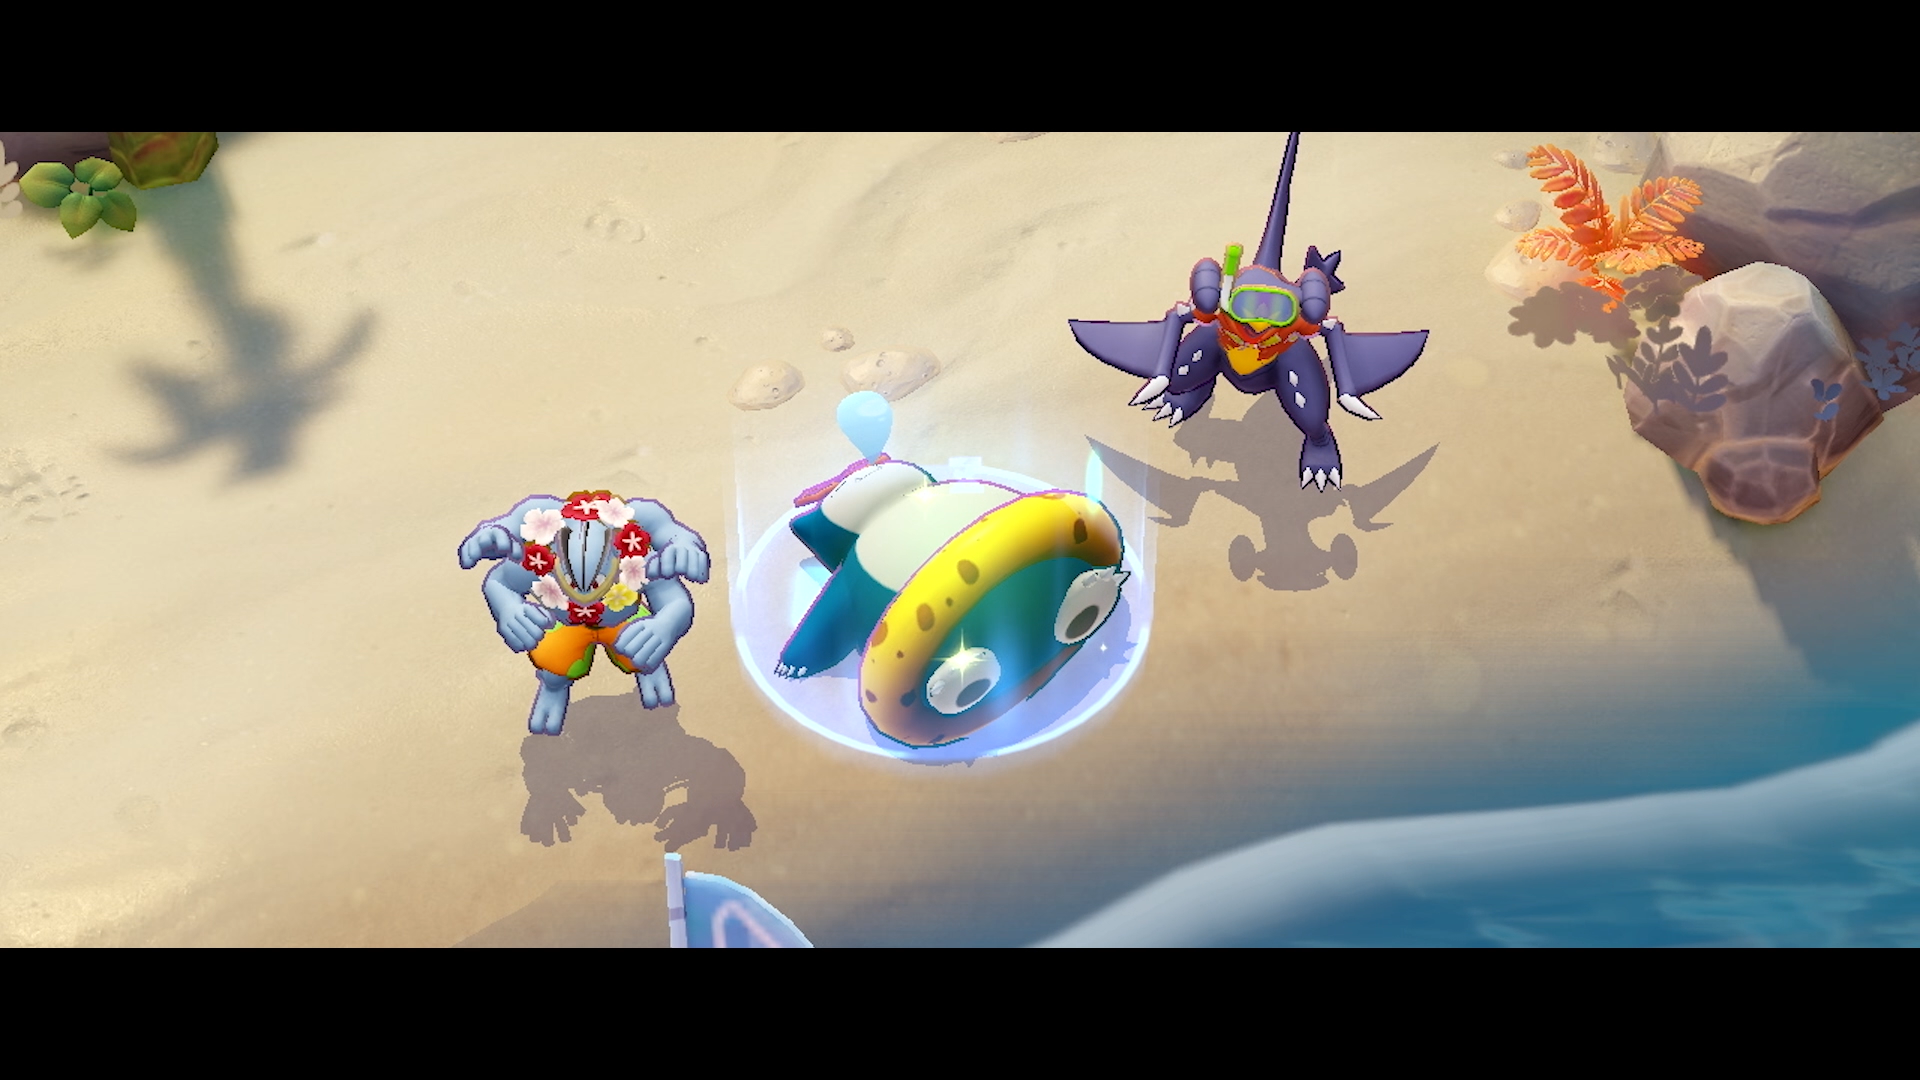 snorlax laying on a beach in Pokemon unite